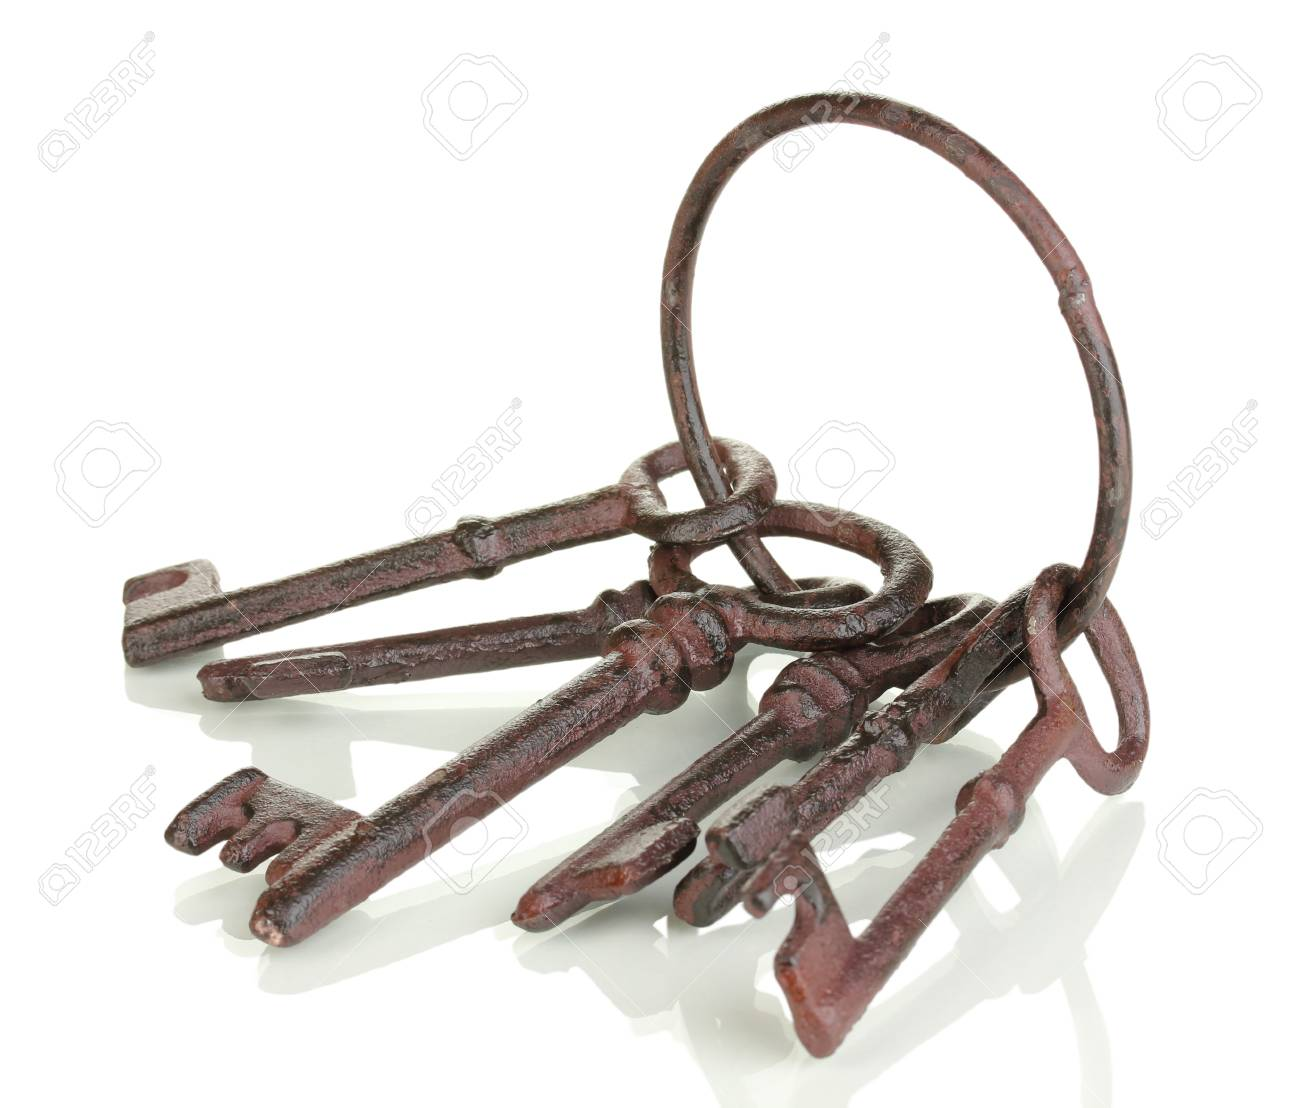 Bunch of old keys isolated on white Stock Photo - 18313173